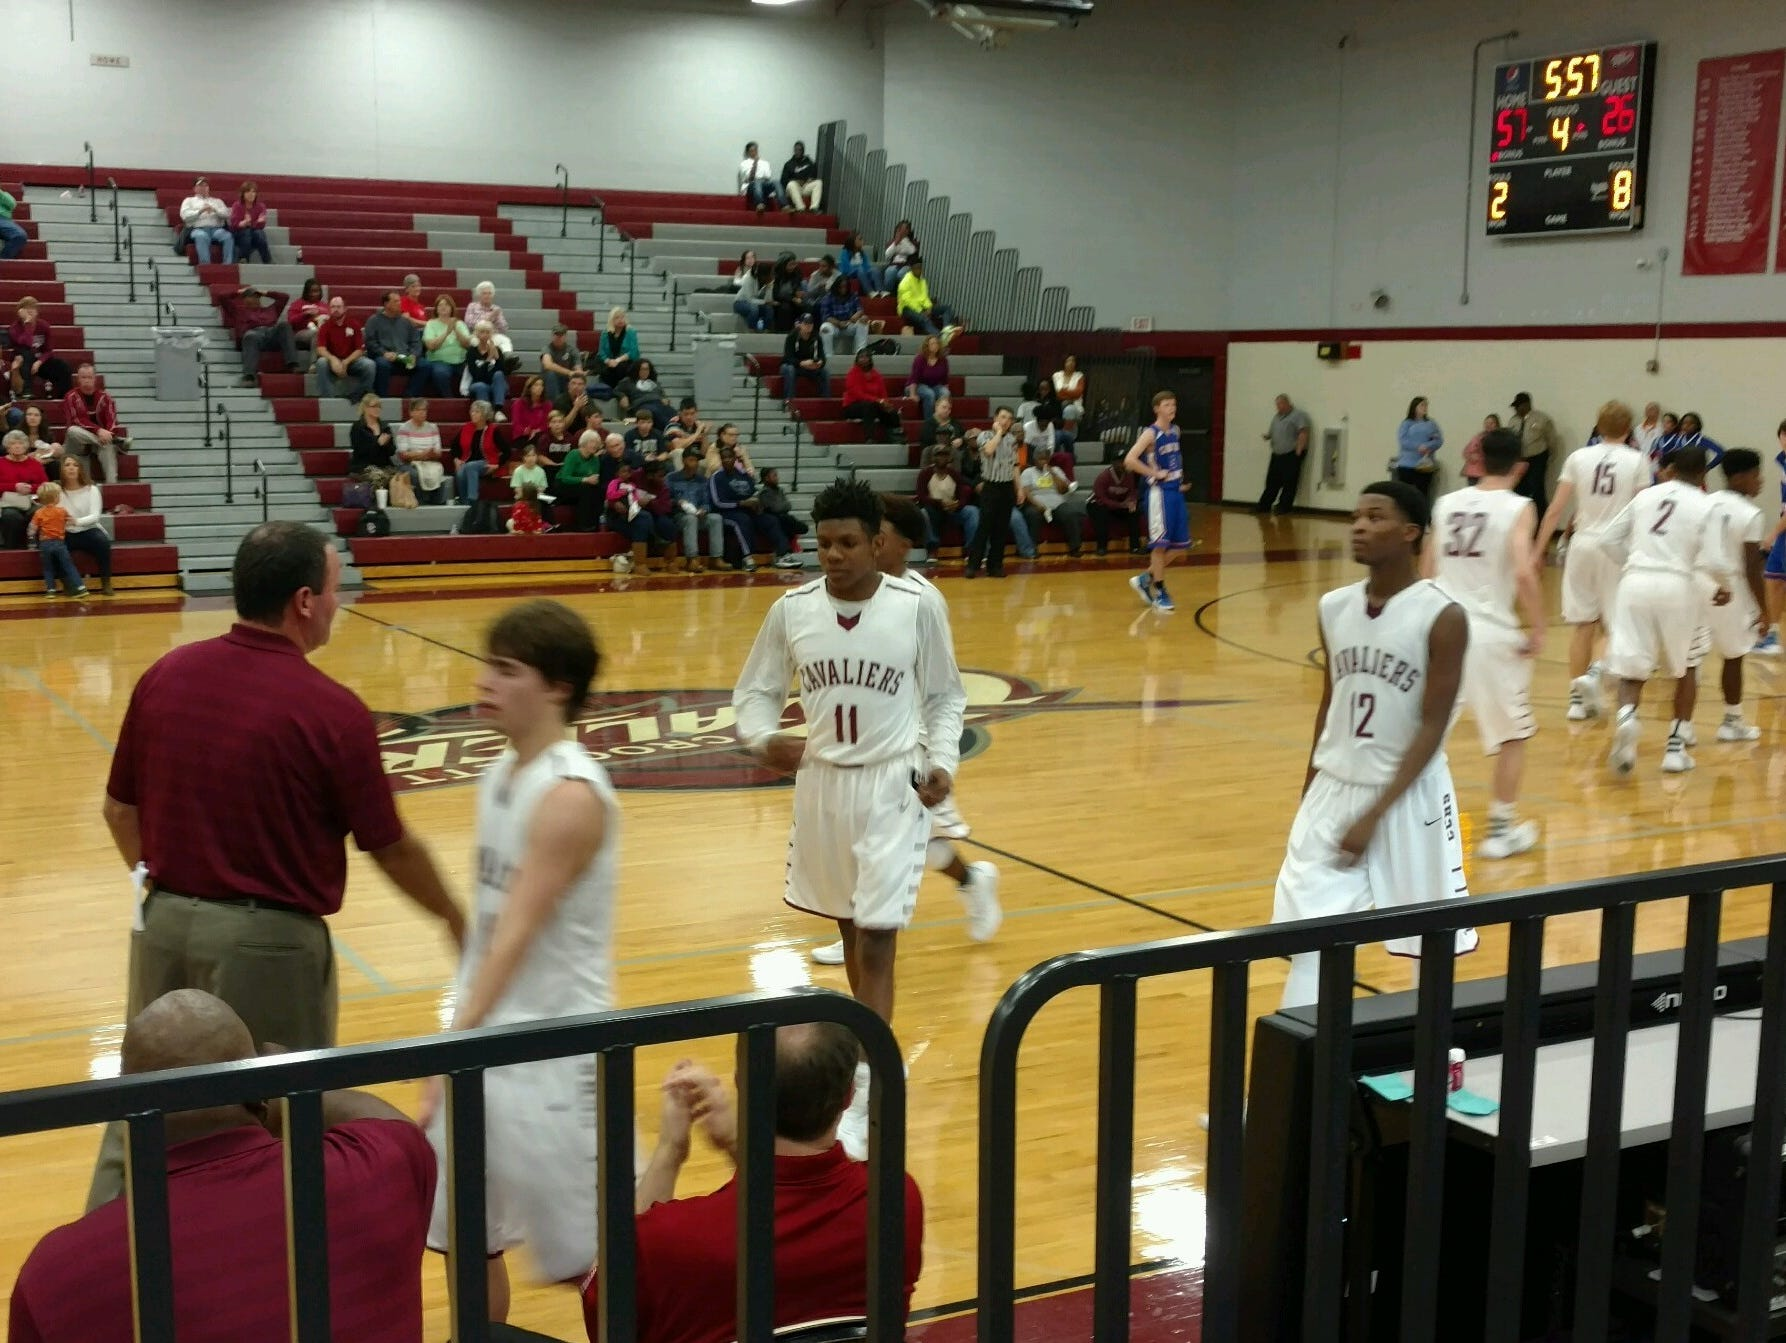 Crockett County beat Chester County on Tuesday.